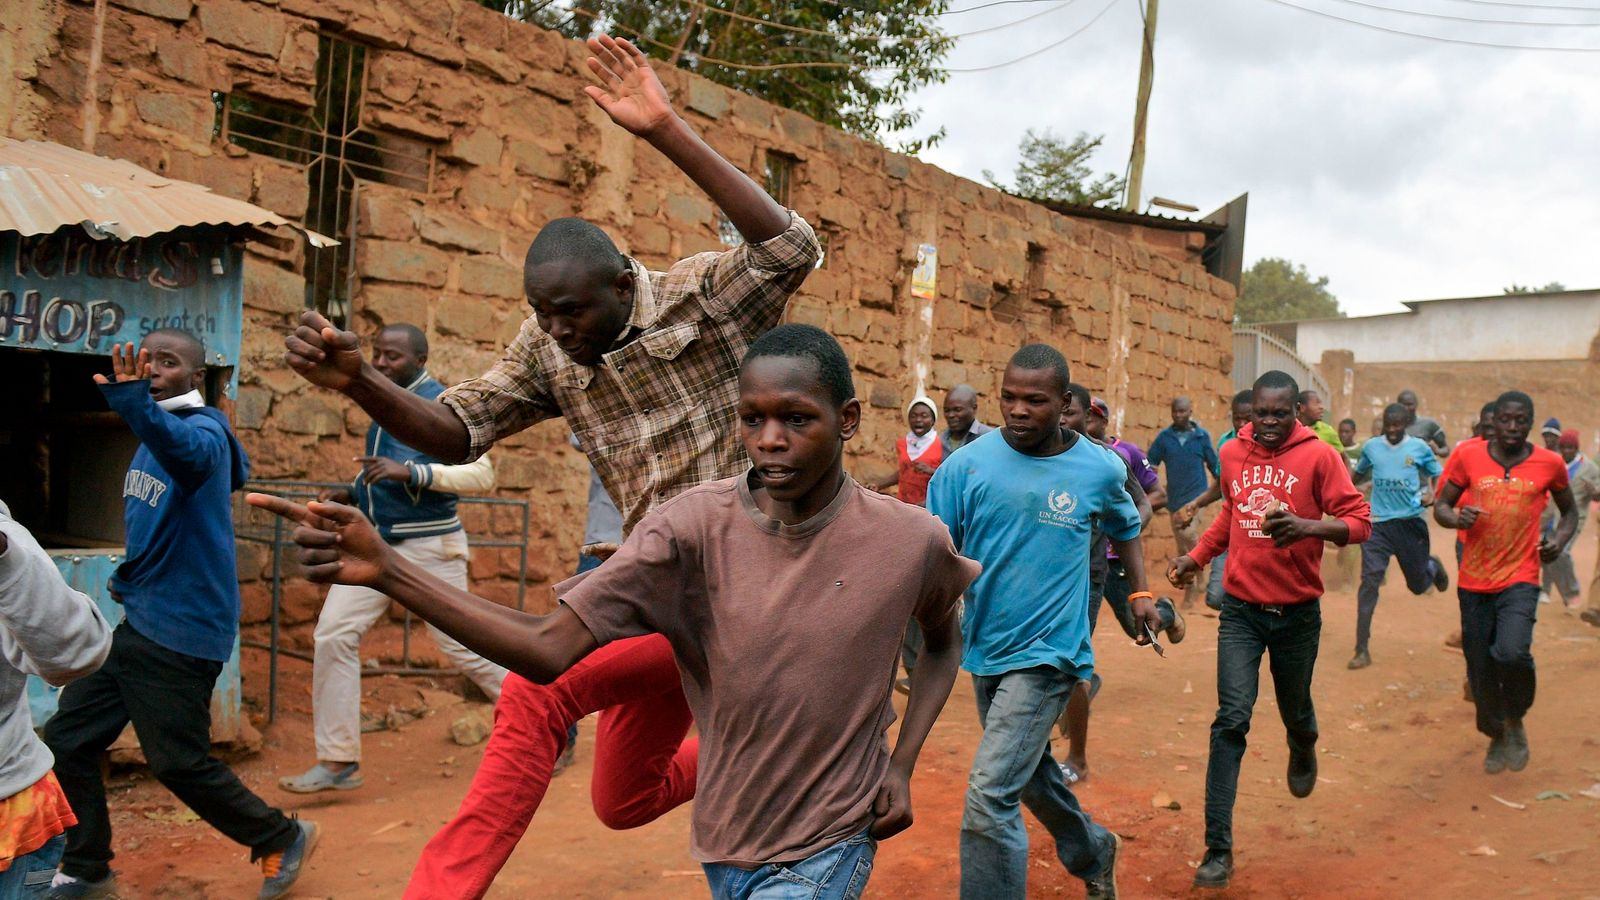 Protesters run divided after demonstration military dismissed live rounds in a Kibera dive in Nairobi